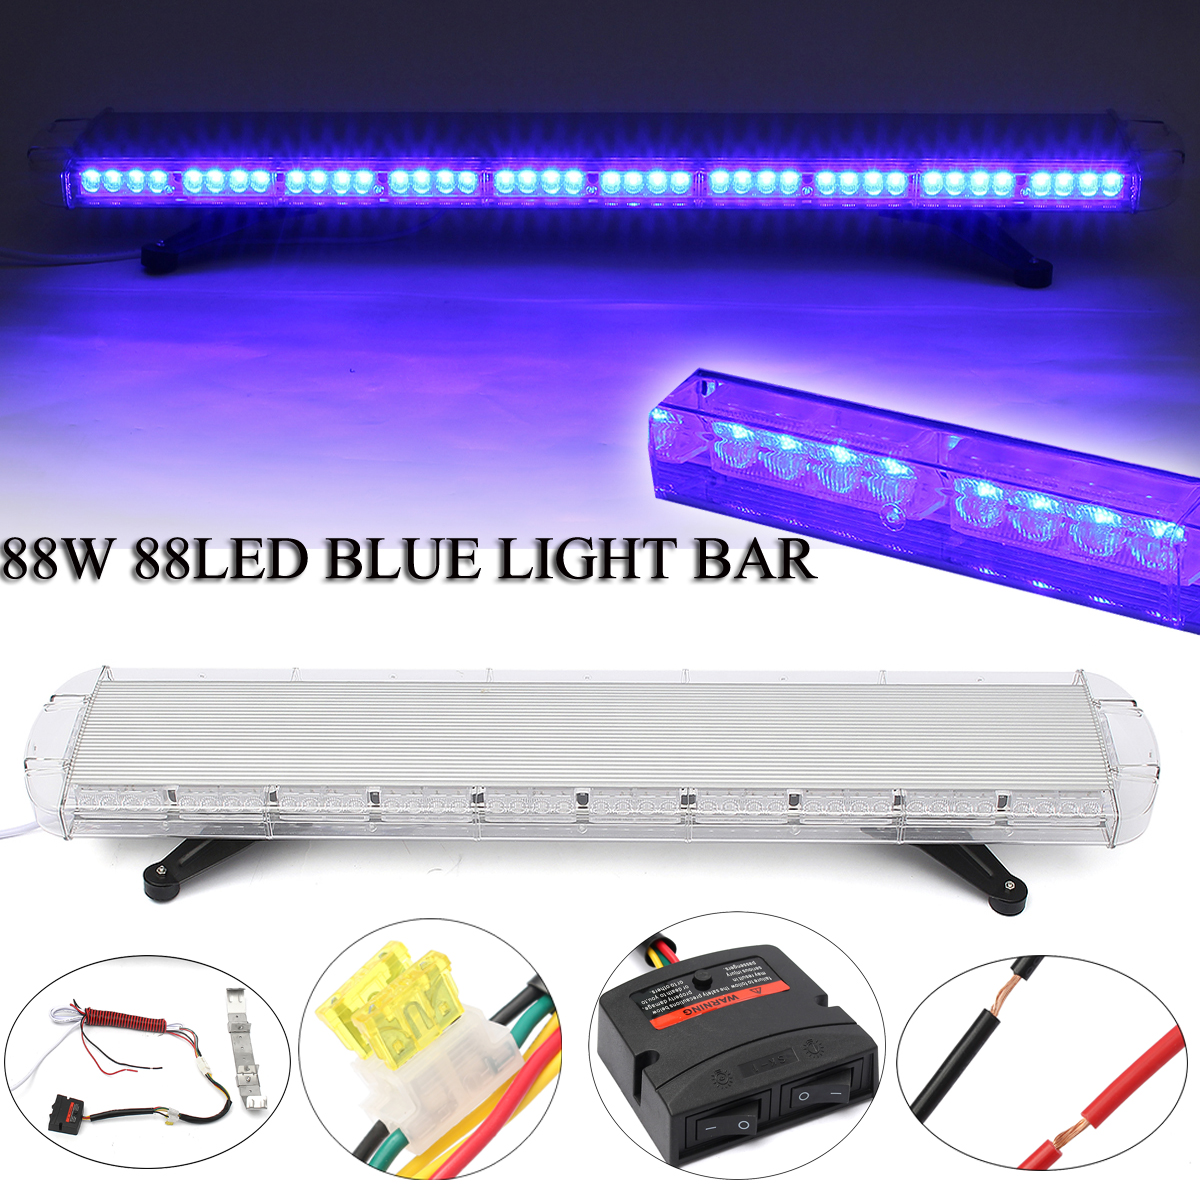 Smuxi 88W 88Led Special Blue Light Emergency Beacon Tow Truck Response Strobe Lamp 12/24V LED Work Light Bar Emergency Light ...